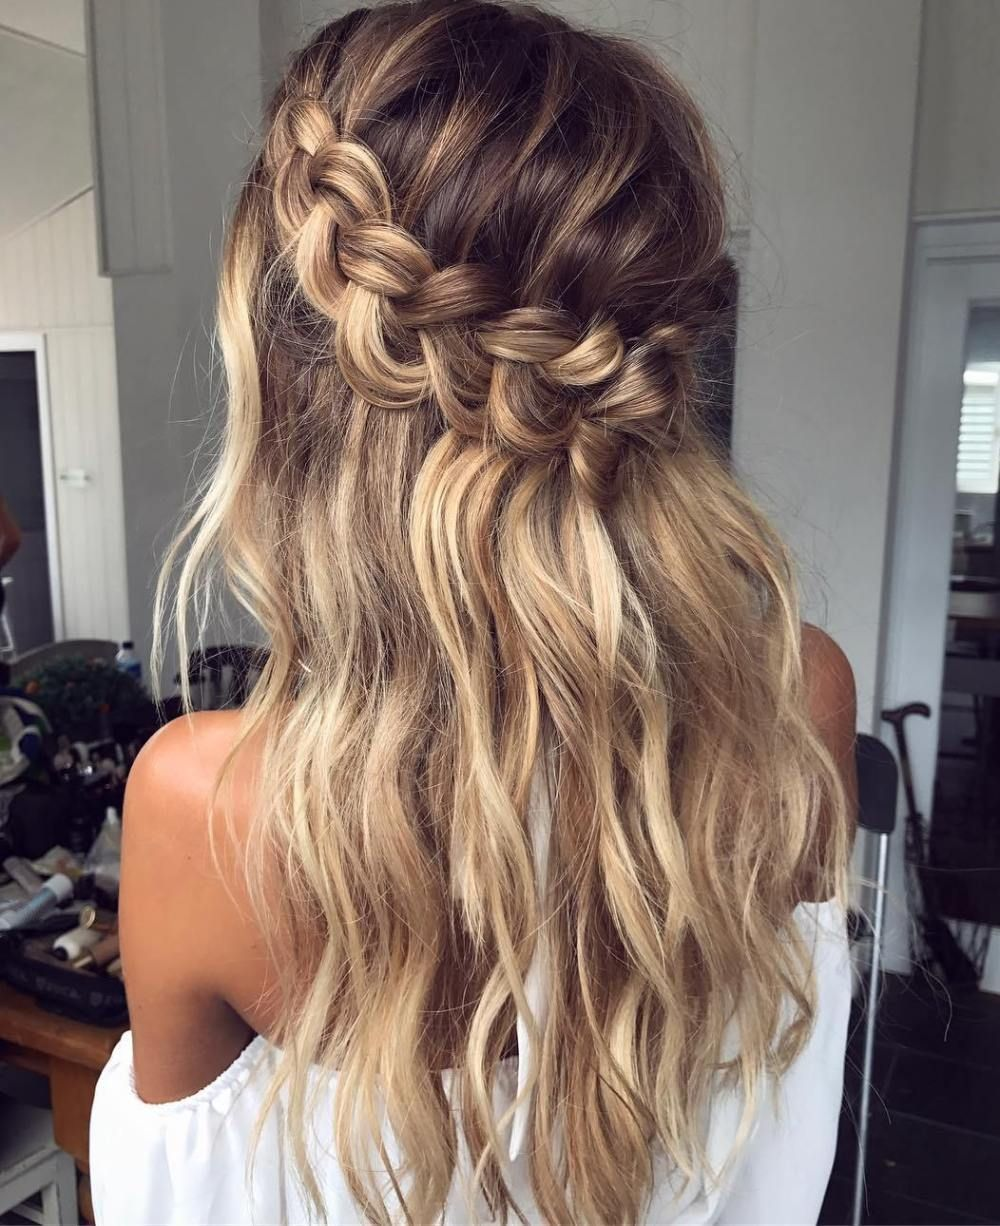 60 Breezy Crown Braid Hairstyles For Summer In 2020 Hair Styles Braids For Long Hair Long Hair Styles